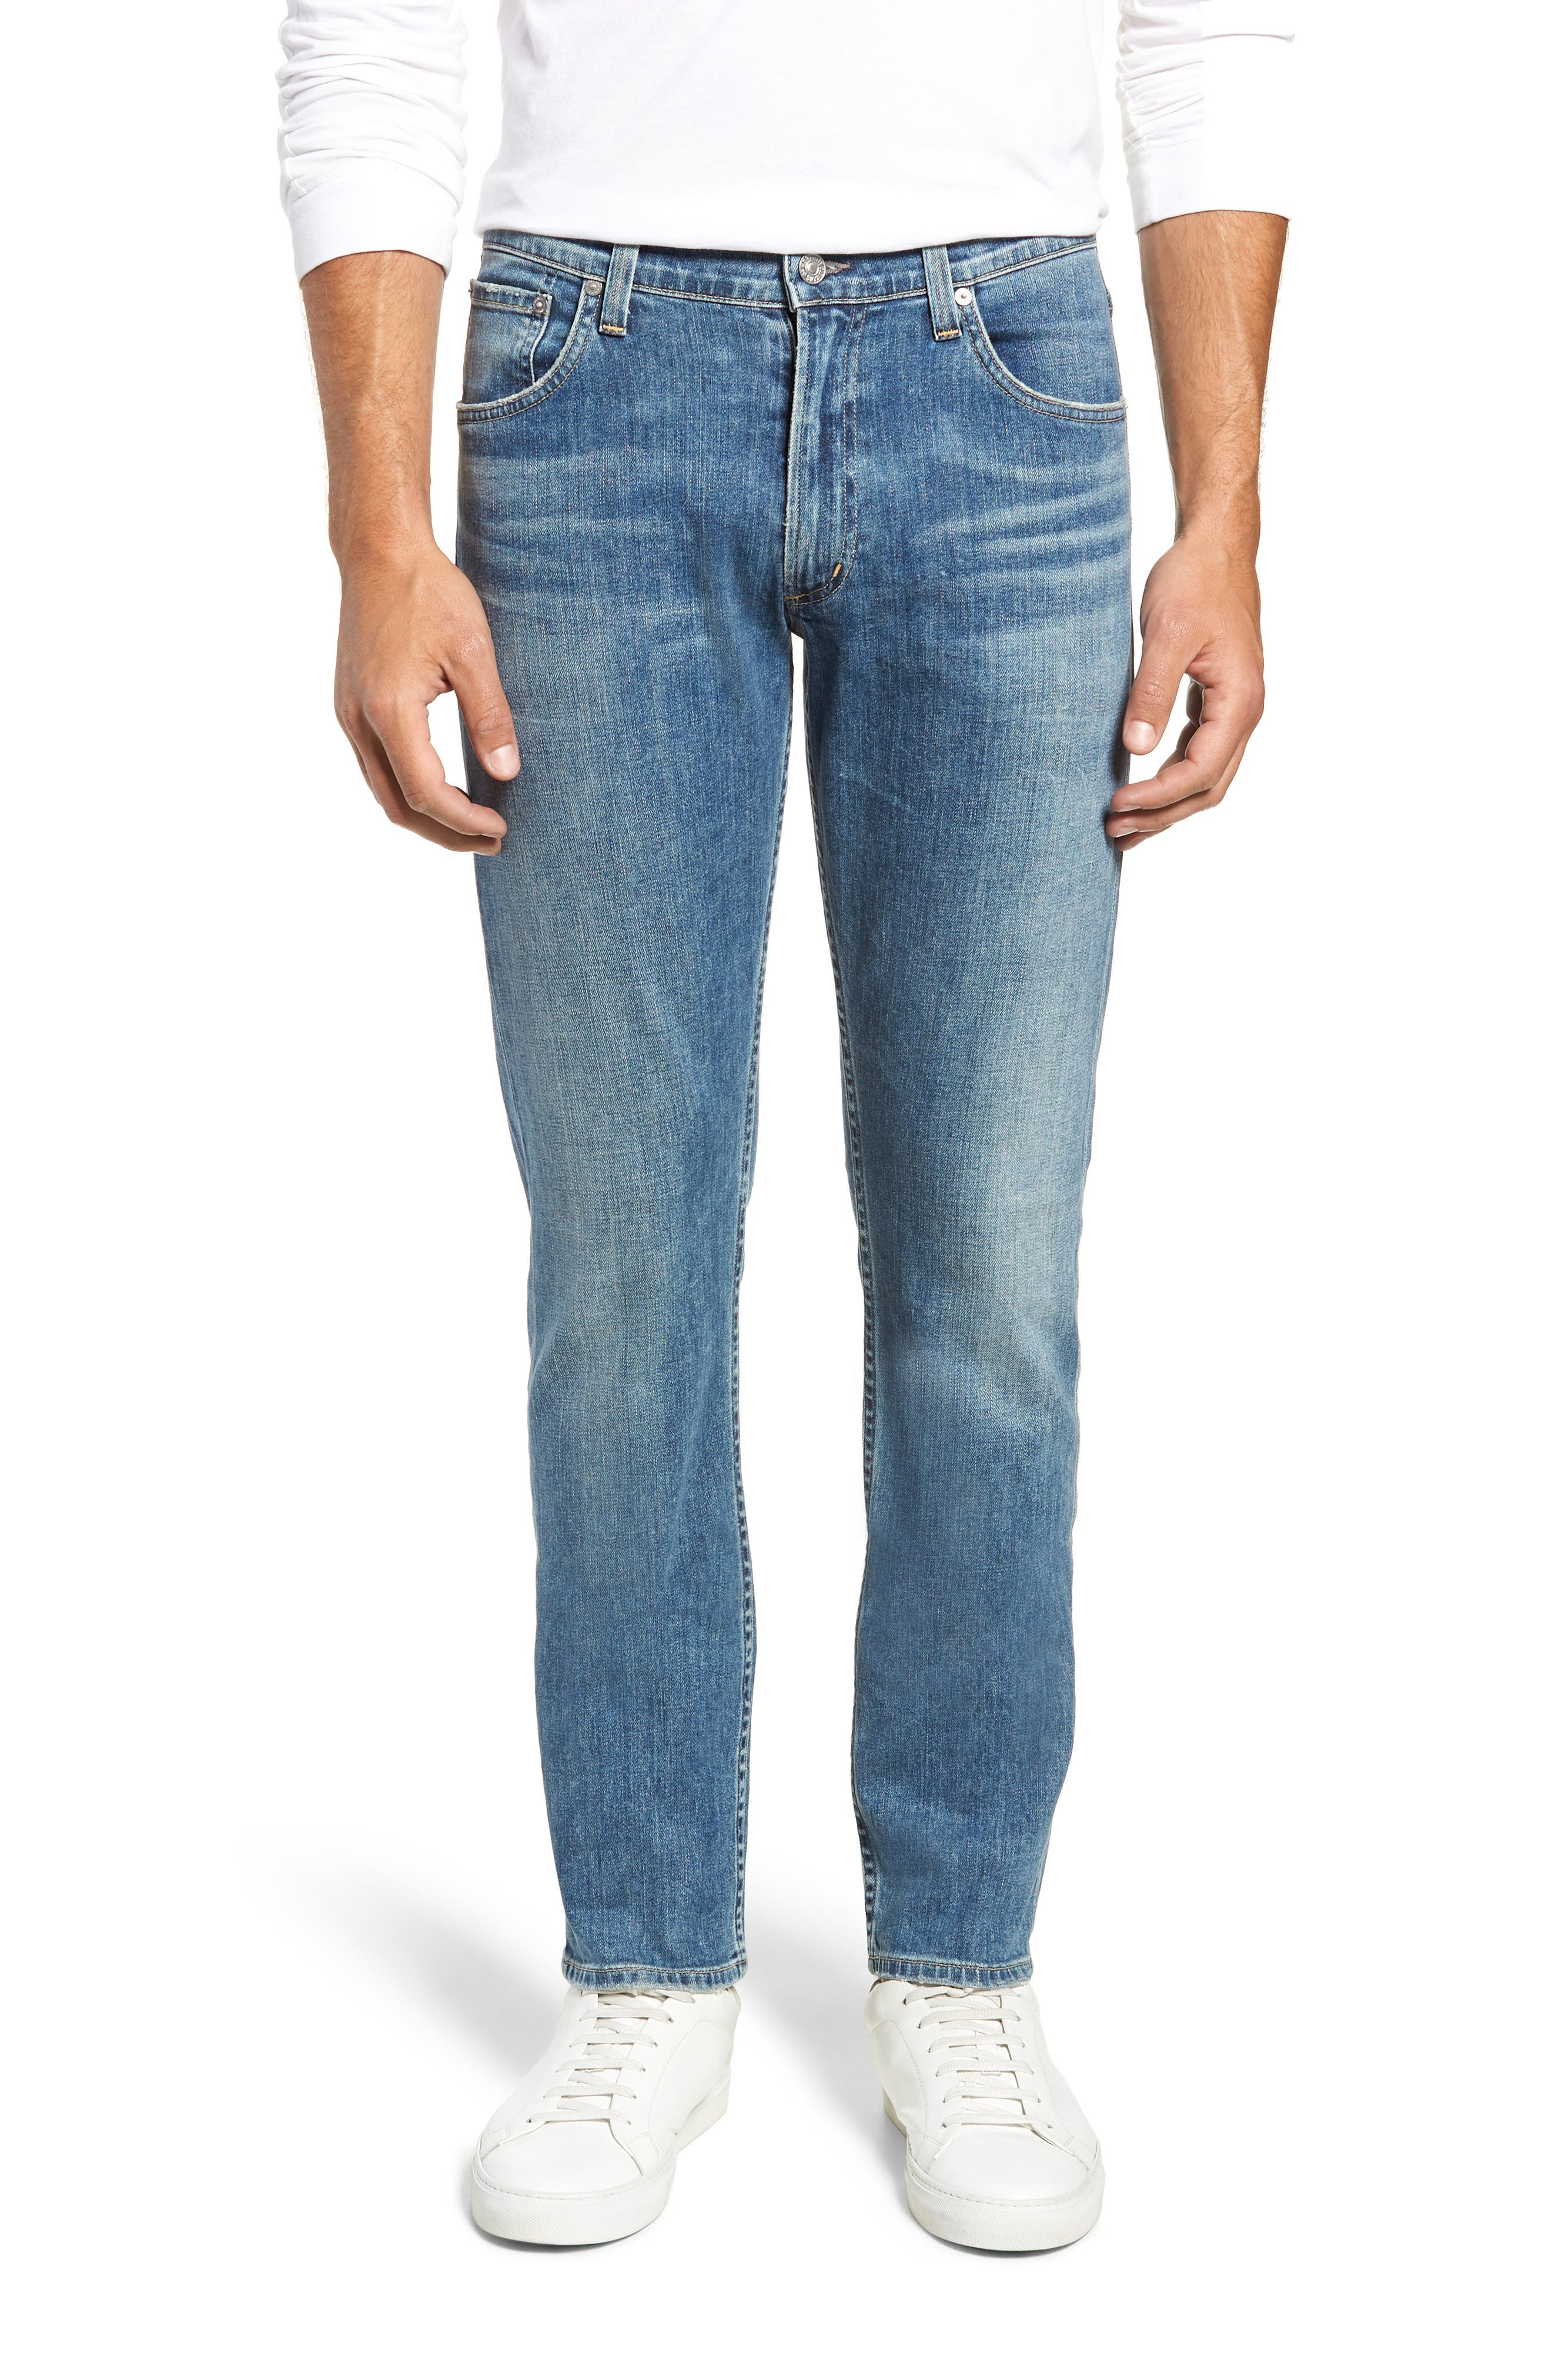 Bowery Slim Fit Jeans,                             Main thumbnail 1, color,                             ALAND